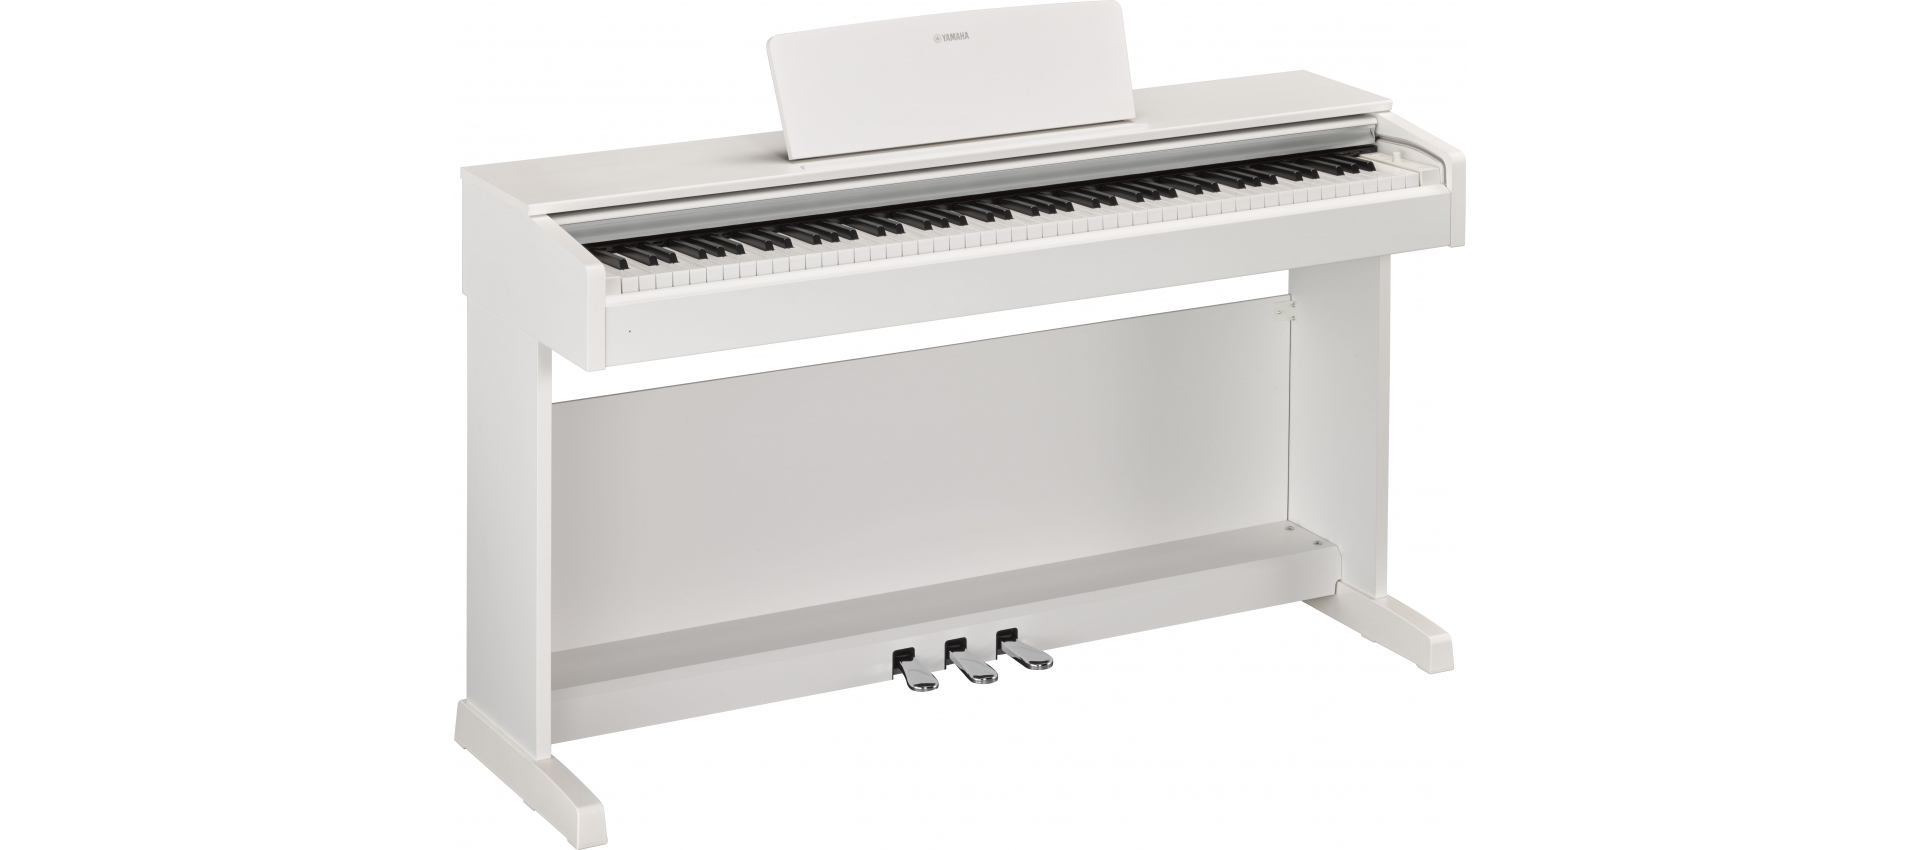 yamaha ydp 143wh digital piano white arius series. Black Bedroom Furniture Sets. Home Design Ideas